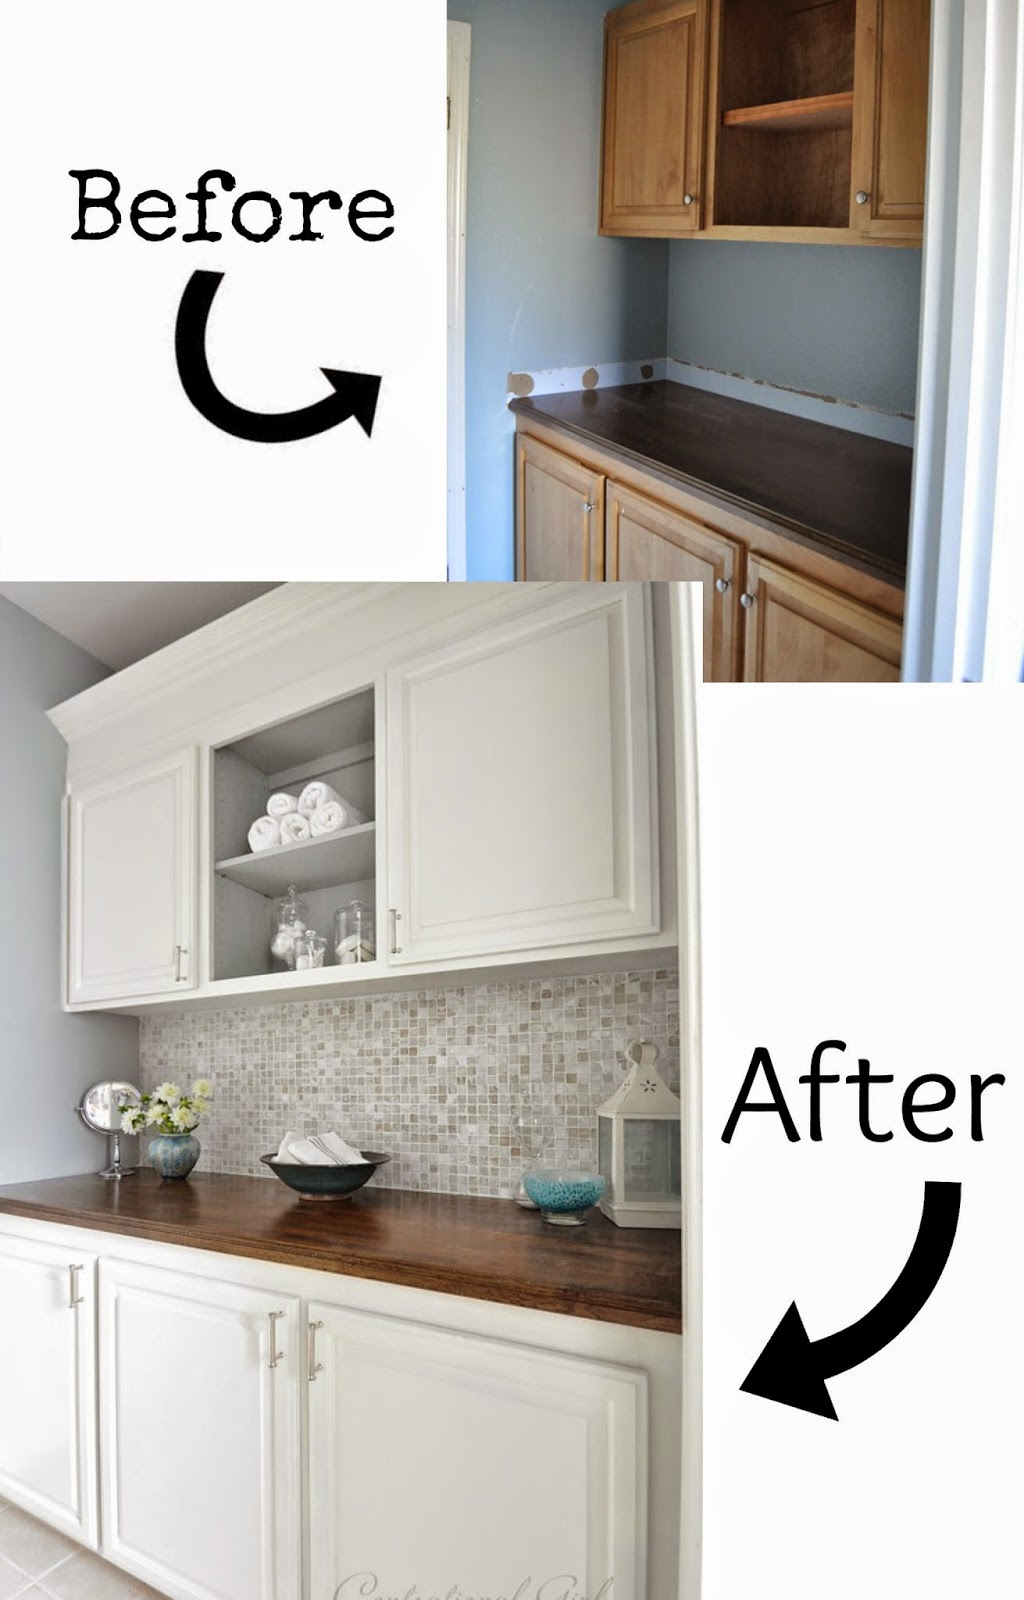 monday july 7 2014 - Bathroom Cabinets Diy